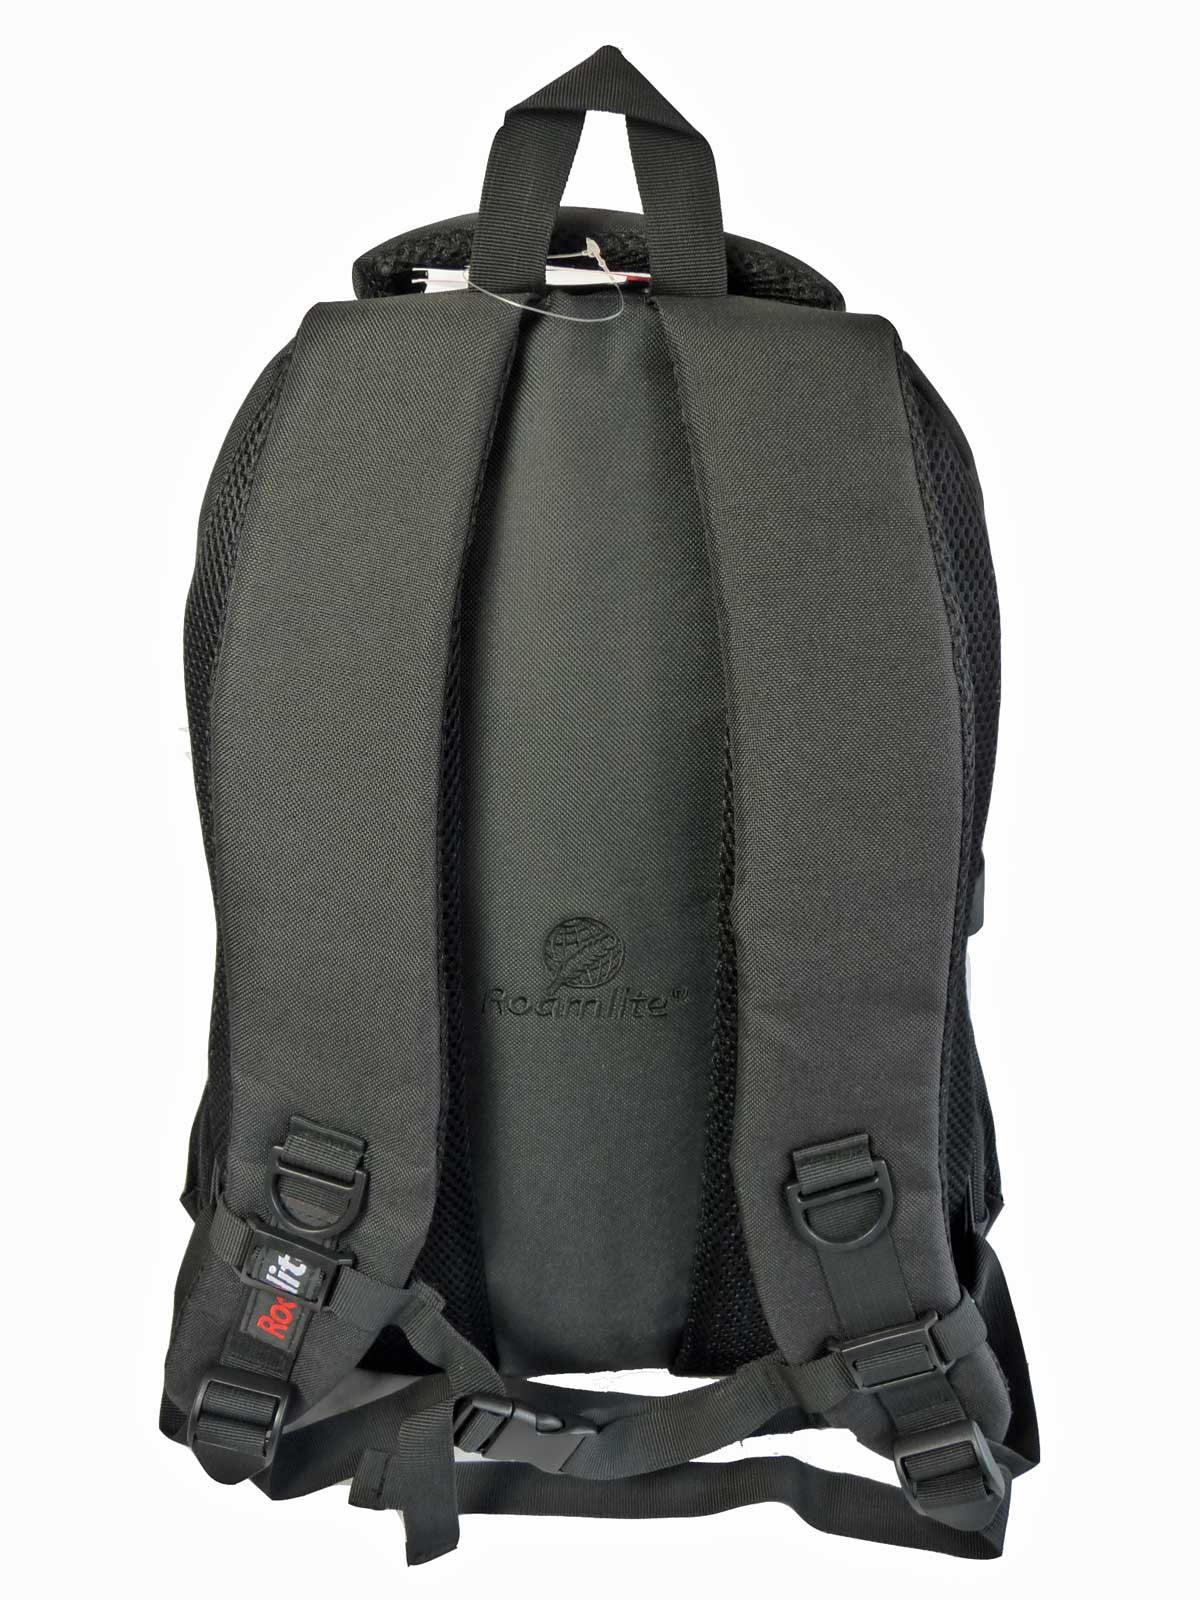 Laptop Macbook Backpack Rucksack Bag RL43 Back View